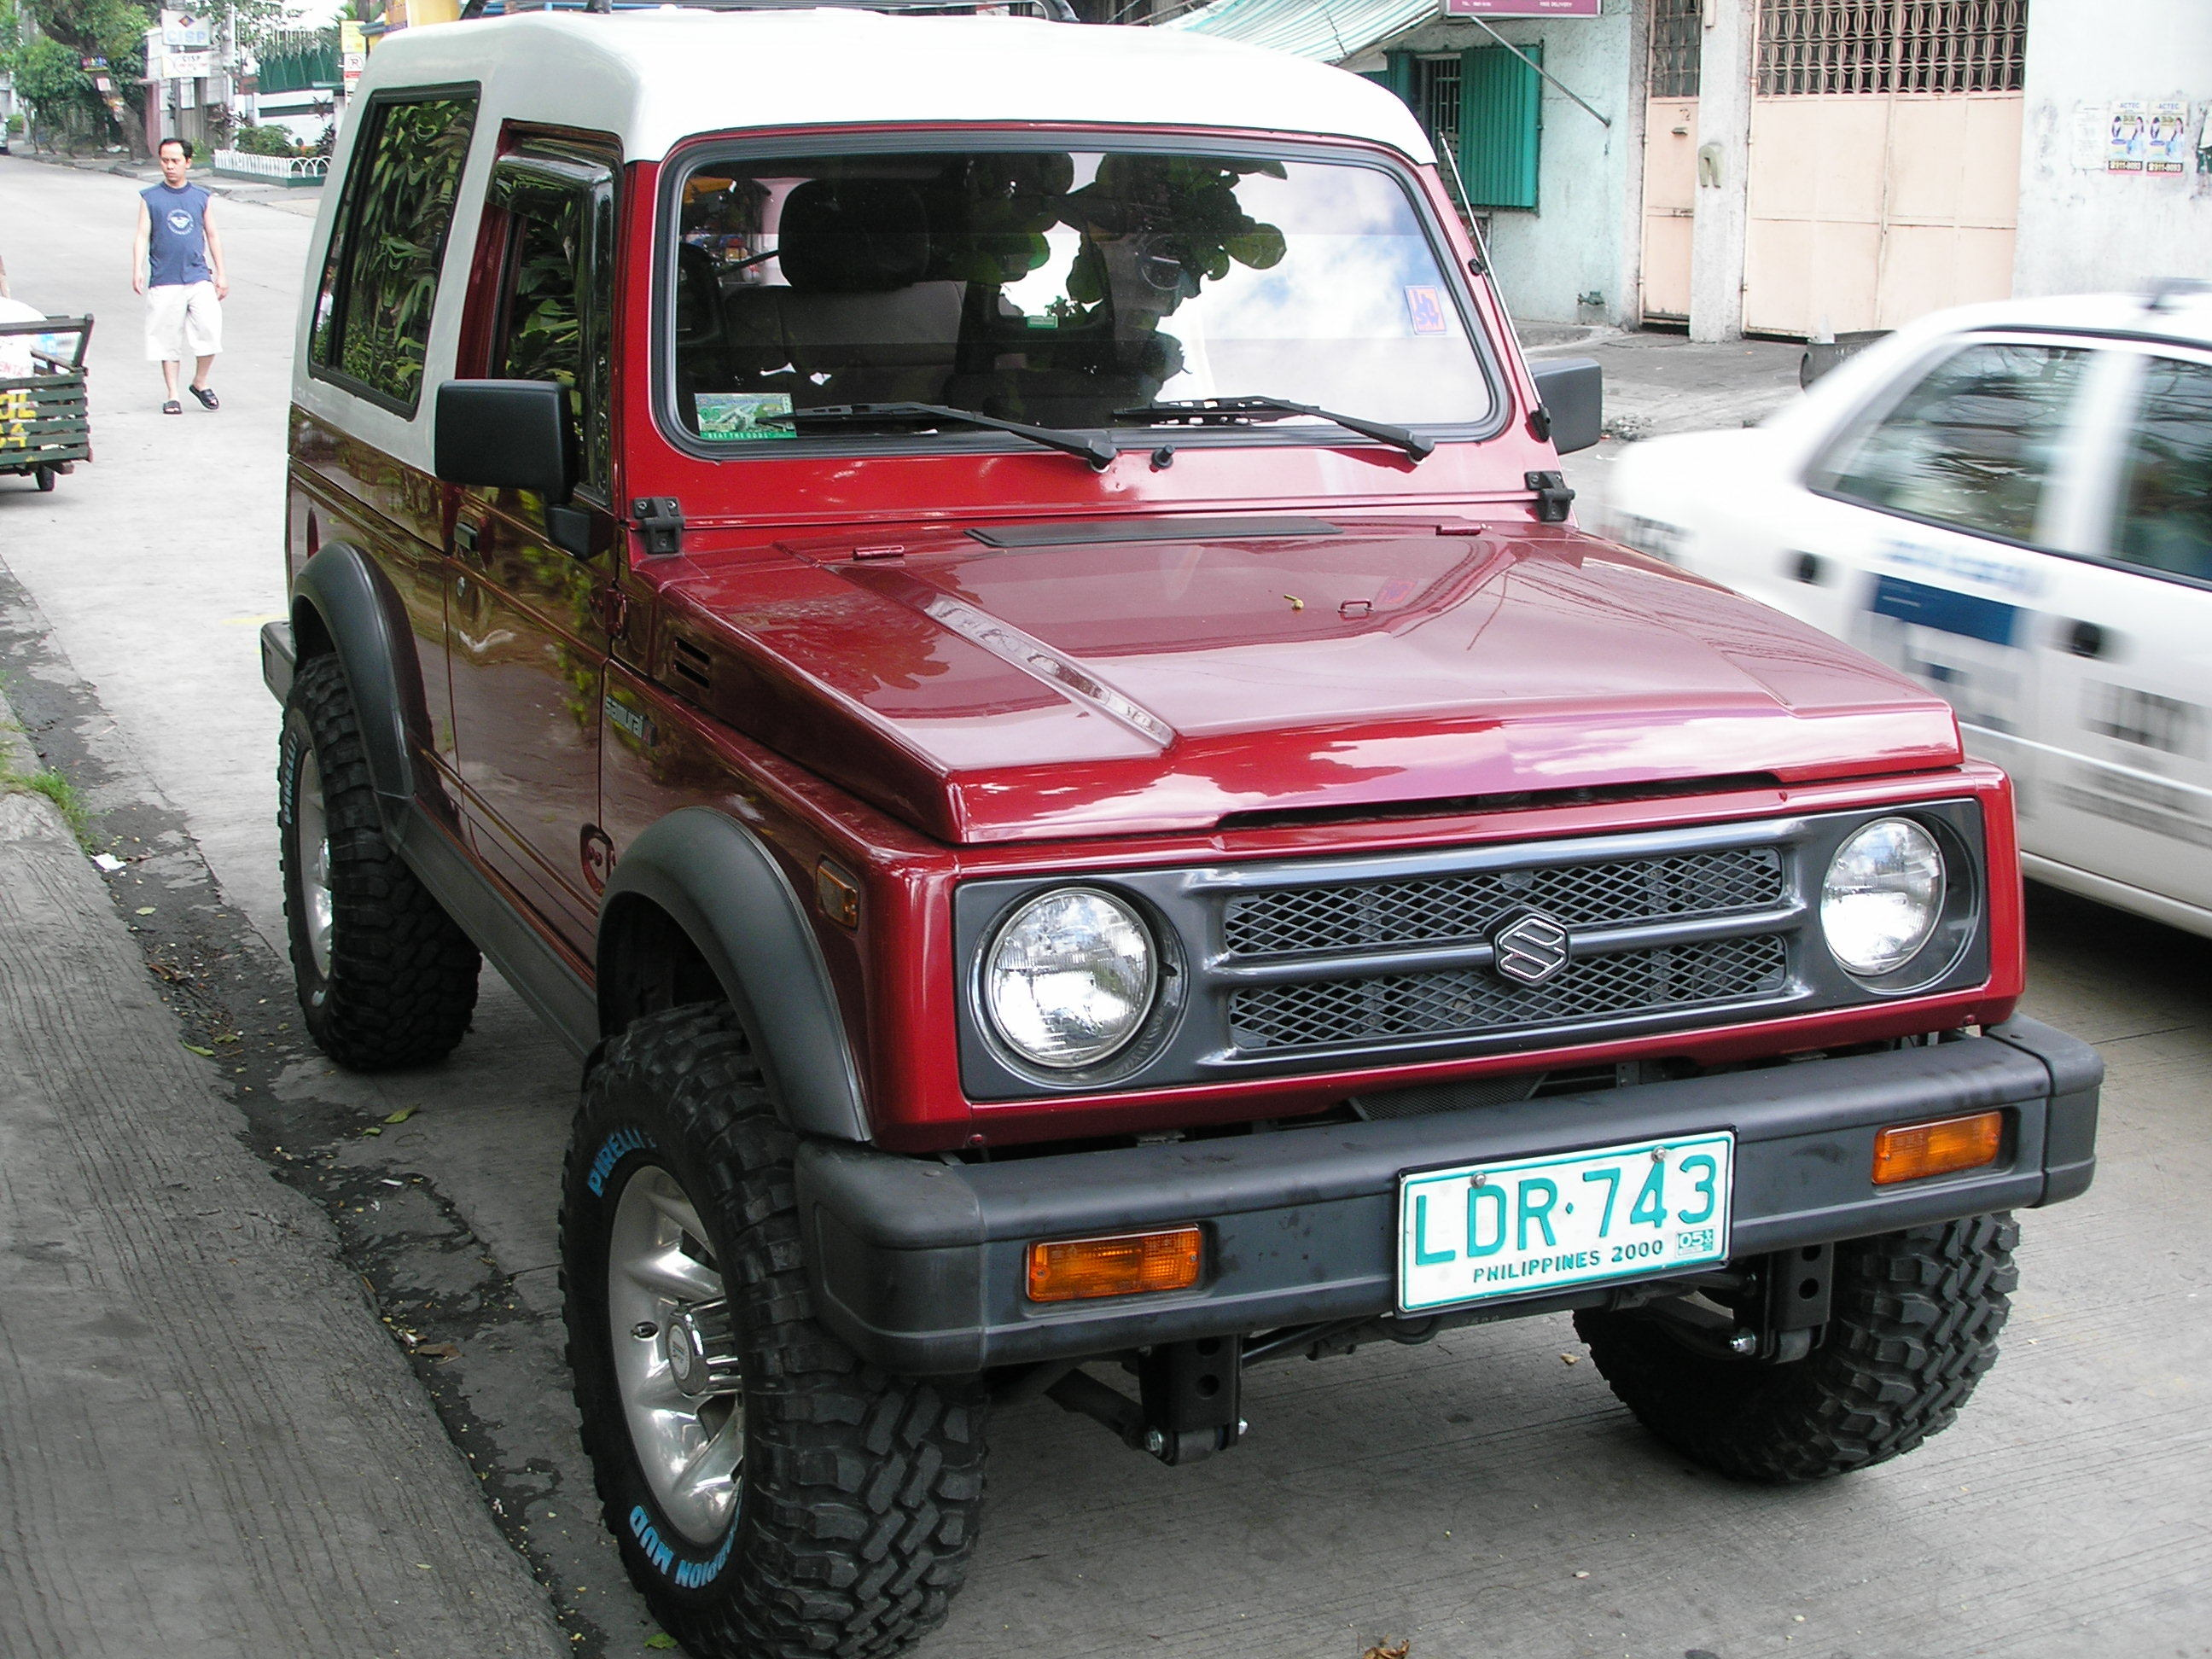 dodongdiamond 2001 suzuki samurai specs photos modification info at cardomain. Black Bedroom Furniture Sets. Home Design Ideas